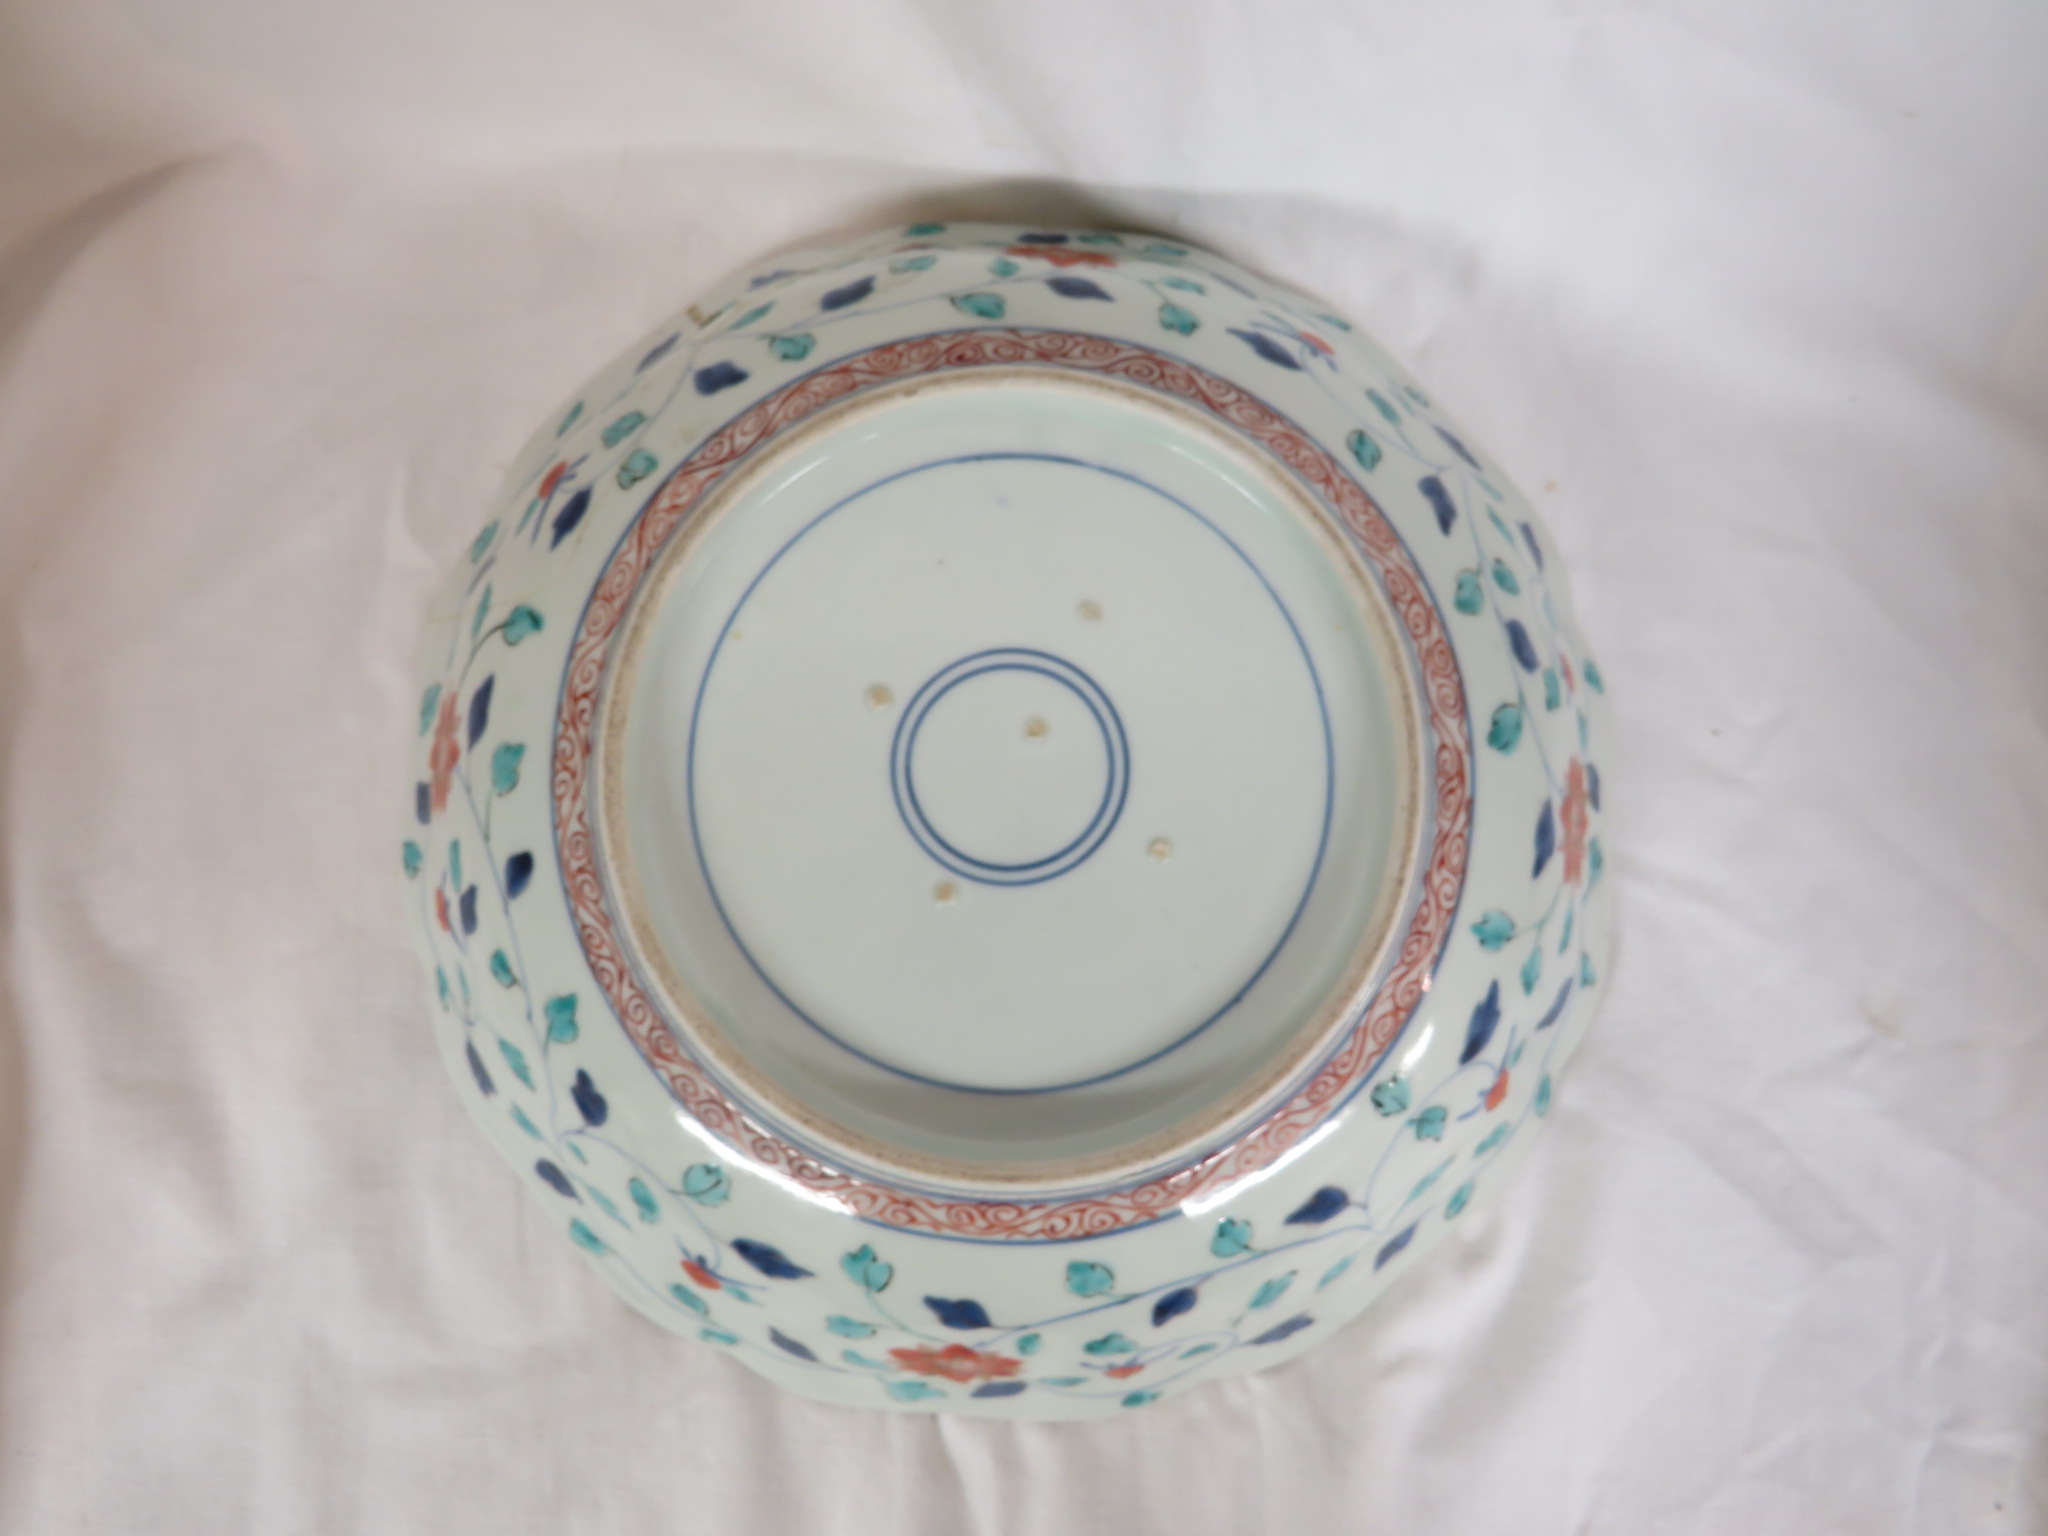 Lot 99 - Chinese porcelain rounded octagonal bowl decorated in the famille verte palette with under glaze